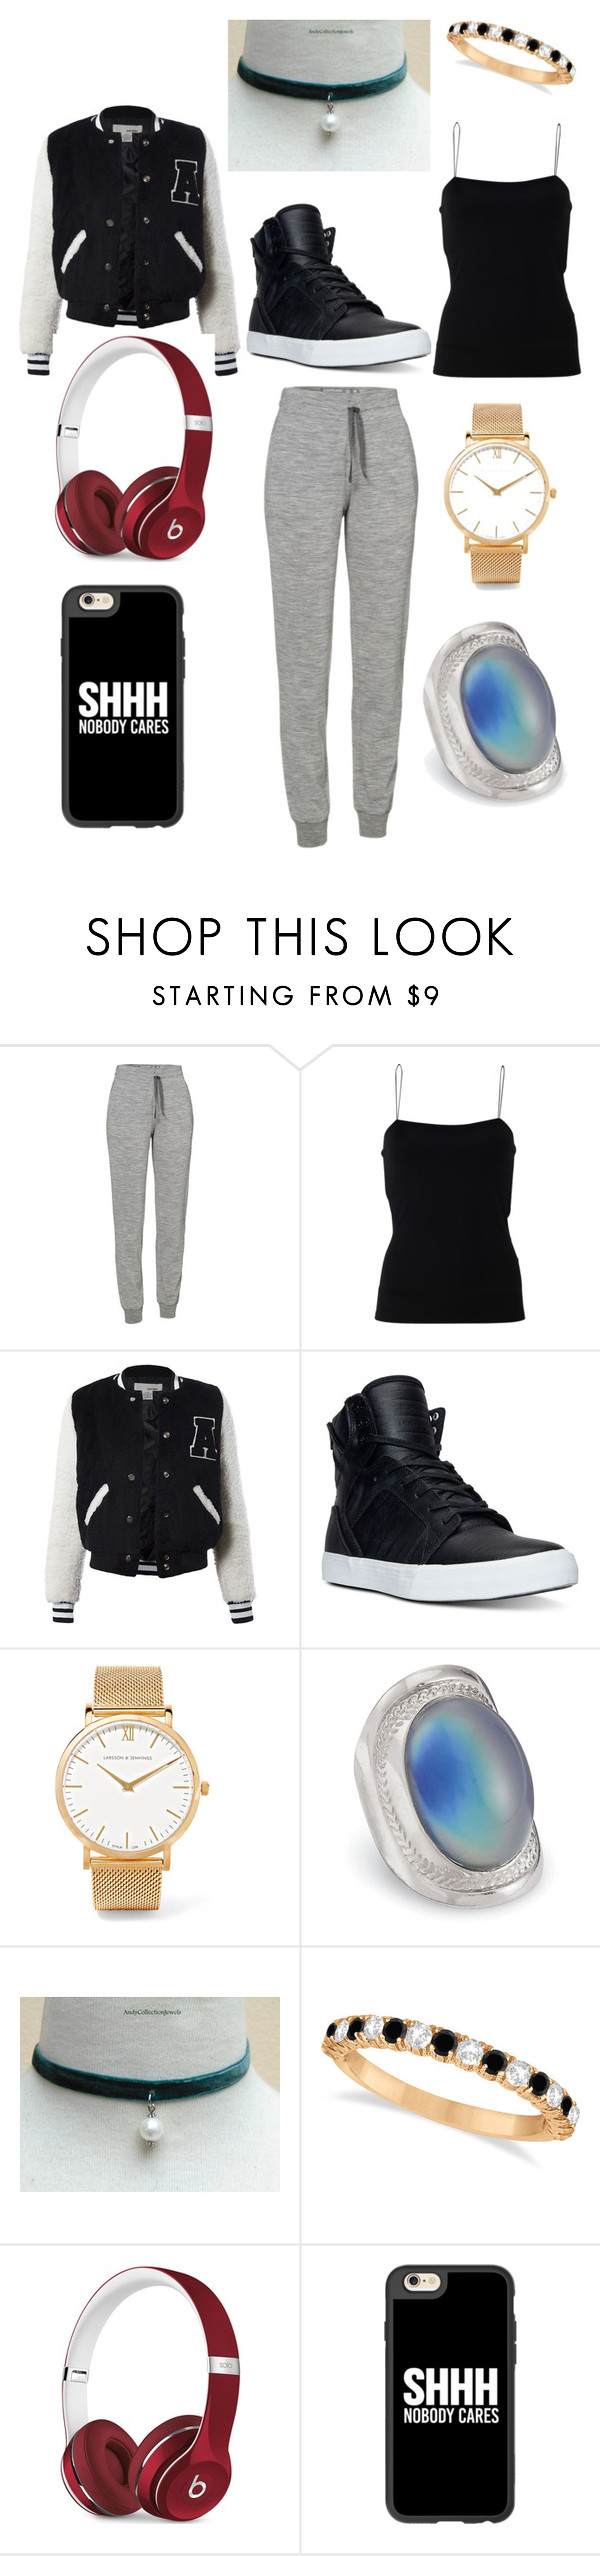 """""""Too Lazy"""" by ashlynn-sofia ❤ liked on Polyvore featuring Icebreaker, T By Alexander Wang, Sans Souci, Supra, Larsson & Jennings, Allurez, Beats by Dr. Dre and Casetify"""